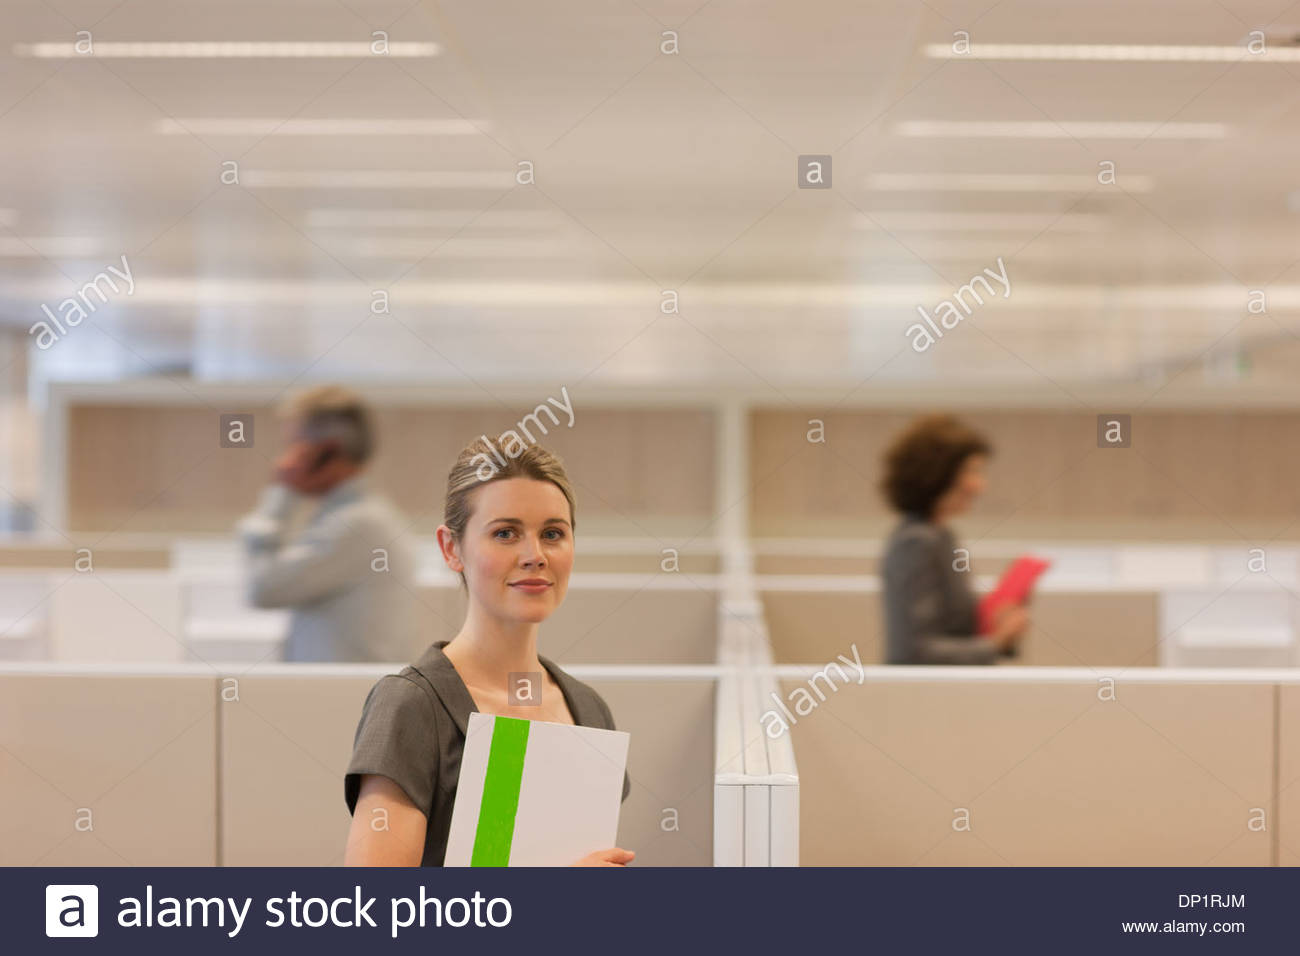 Businesswoman standing in office cubicle - Stock Image